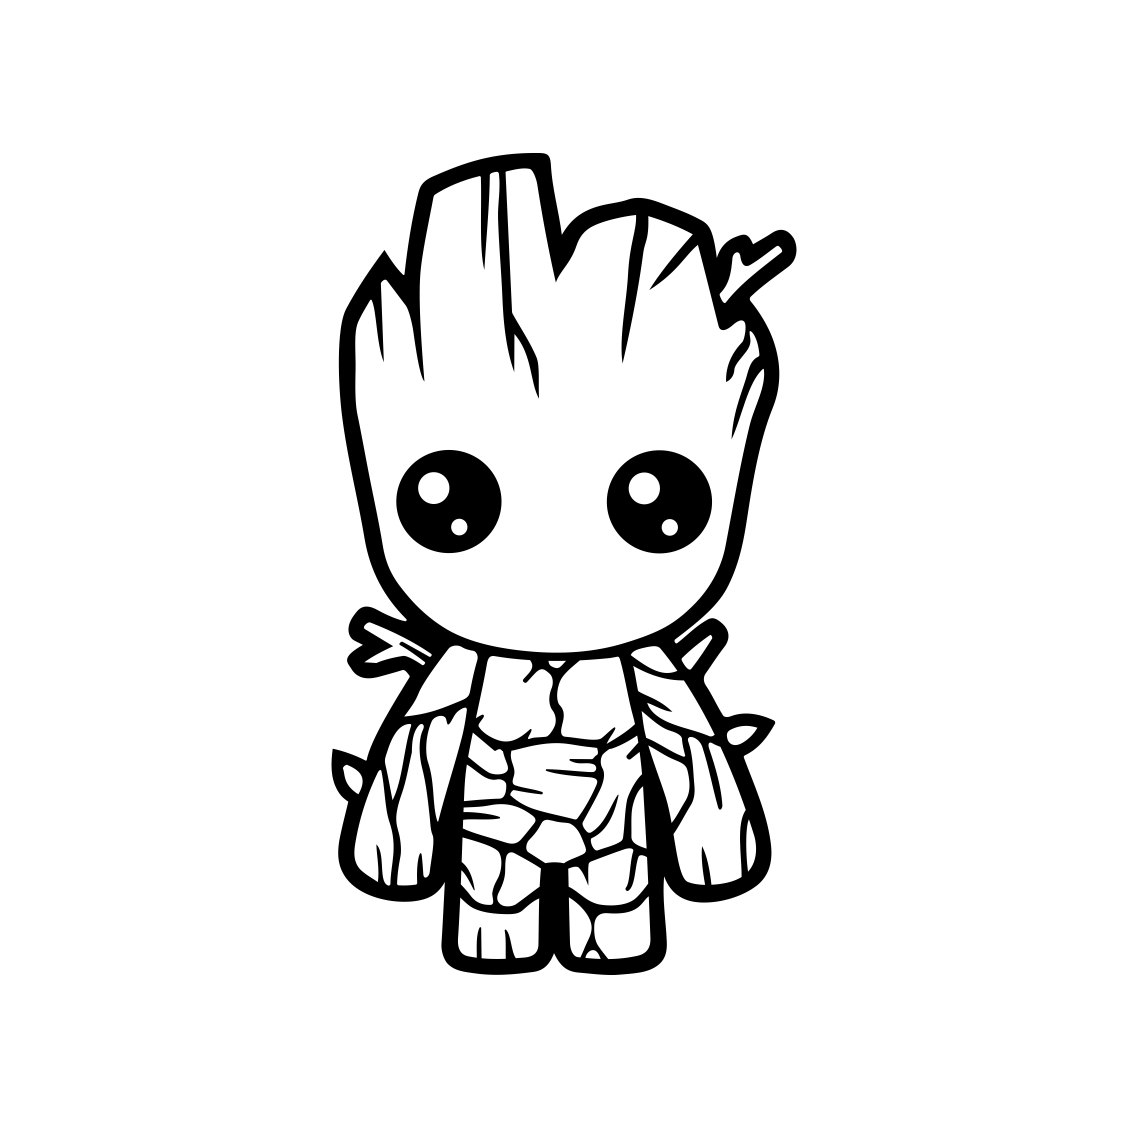 Baby Groot Guardians Of The Galaxy Graphics By Vectordesign On Zibbet